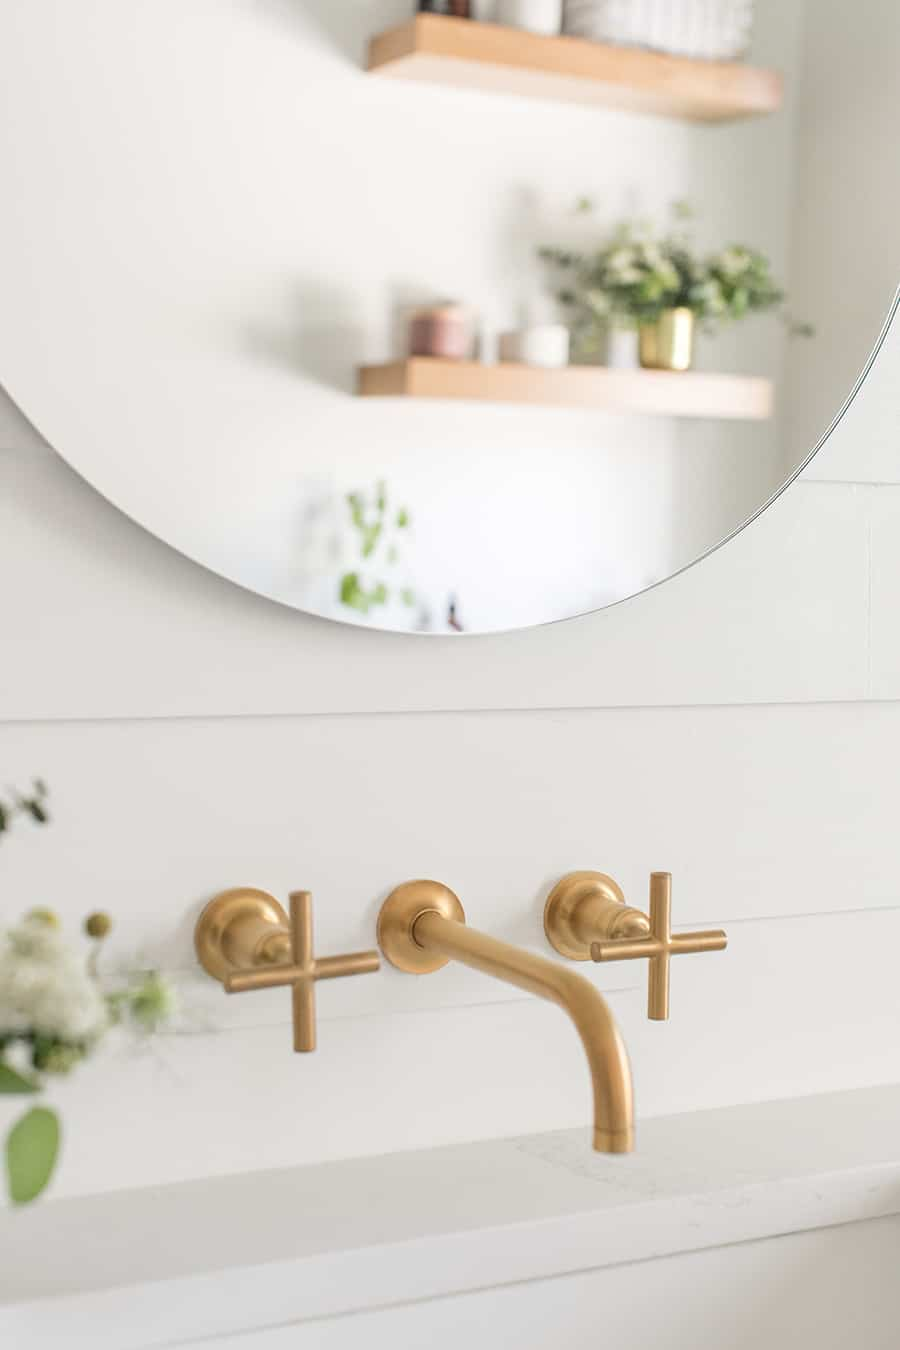 Gold Kohler bathroom faucet with round mirror.